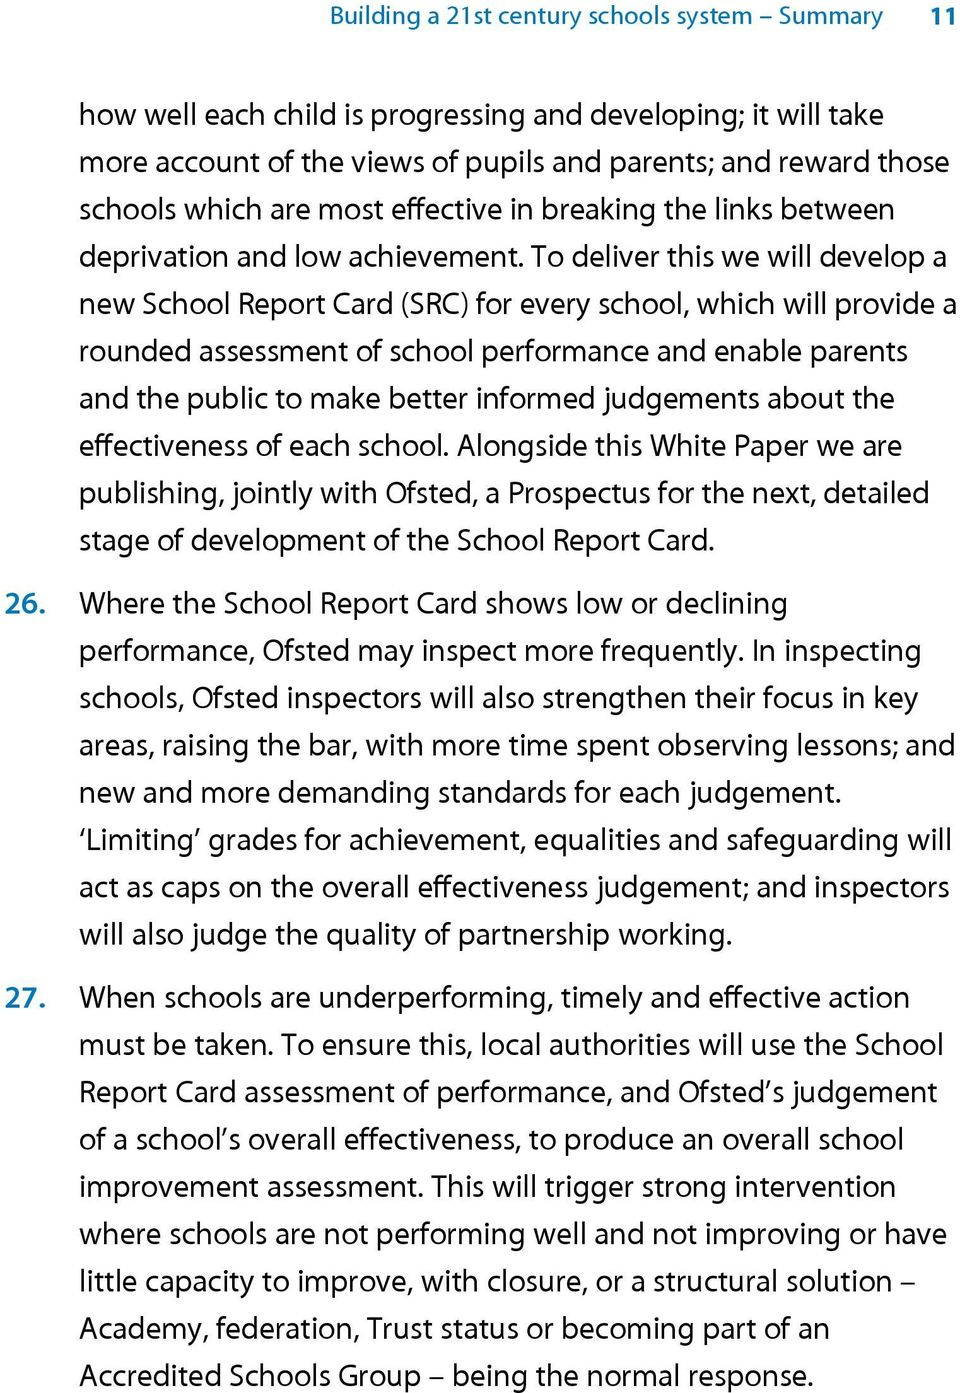 To deliver this we will develop a new School Report Card (SRC) for every school, which will provide a rounded assessment of school performance and enable parents and the public to make better